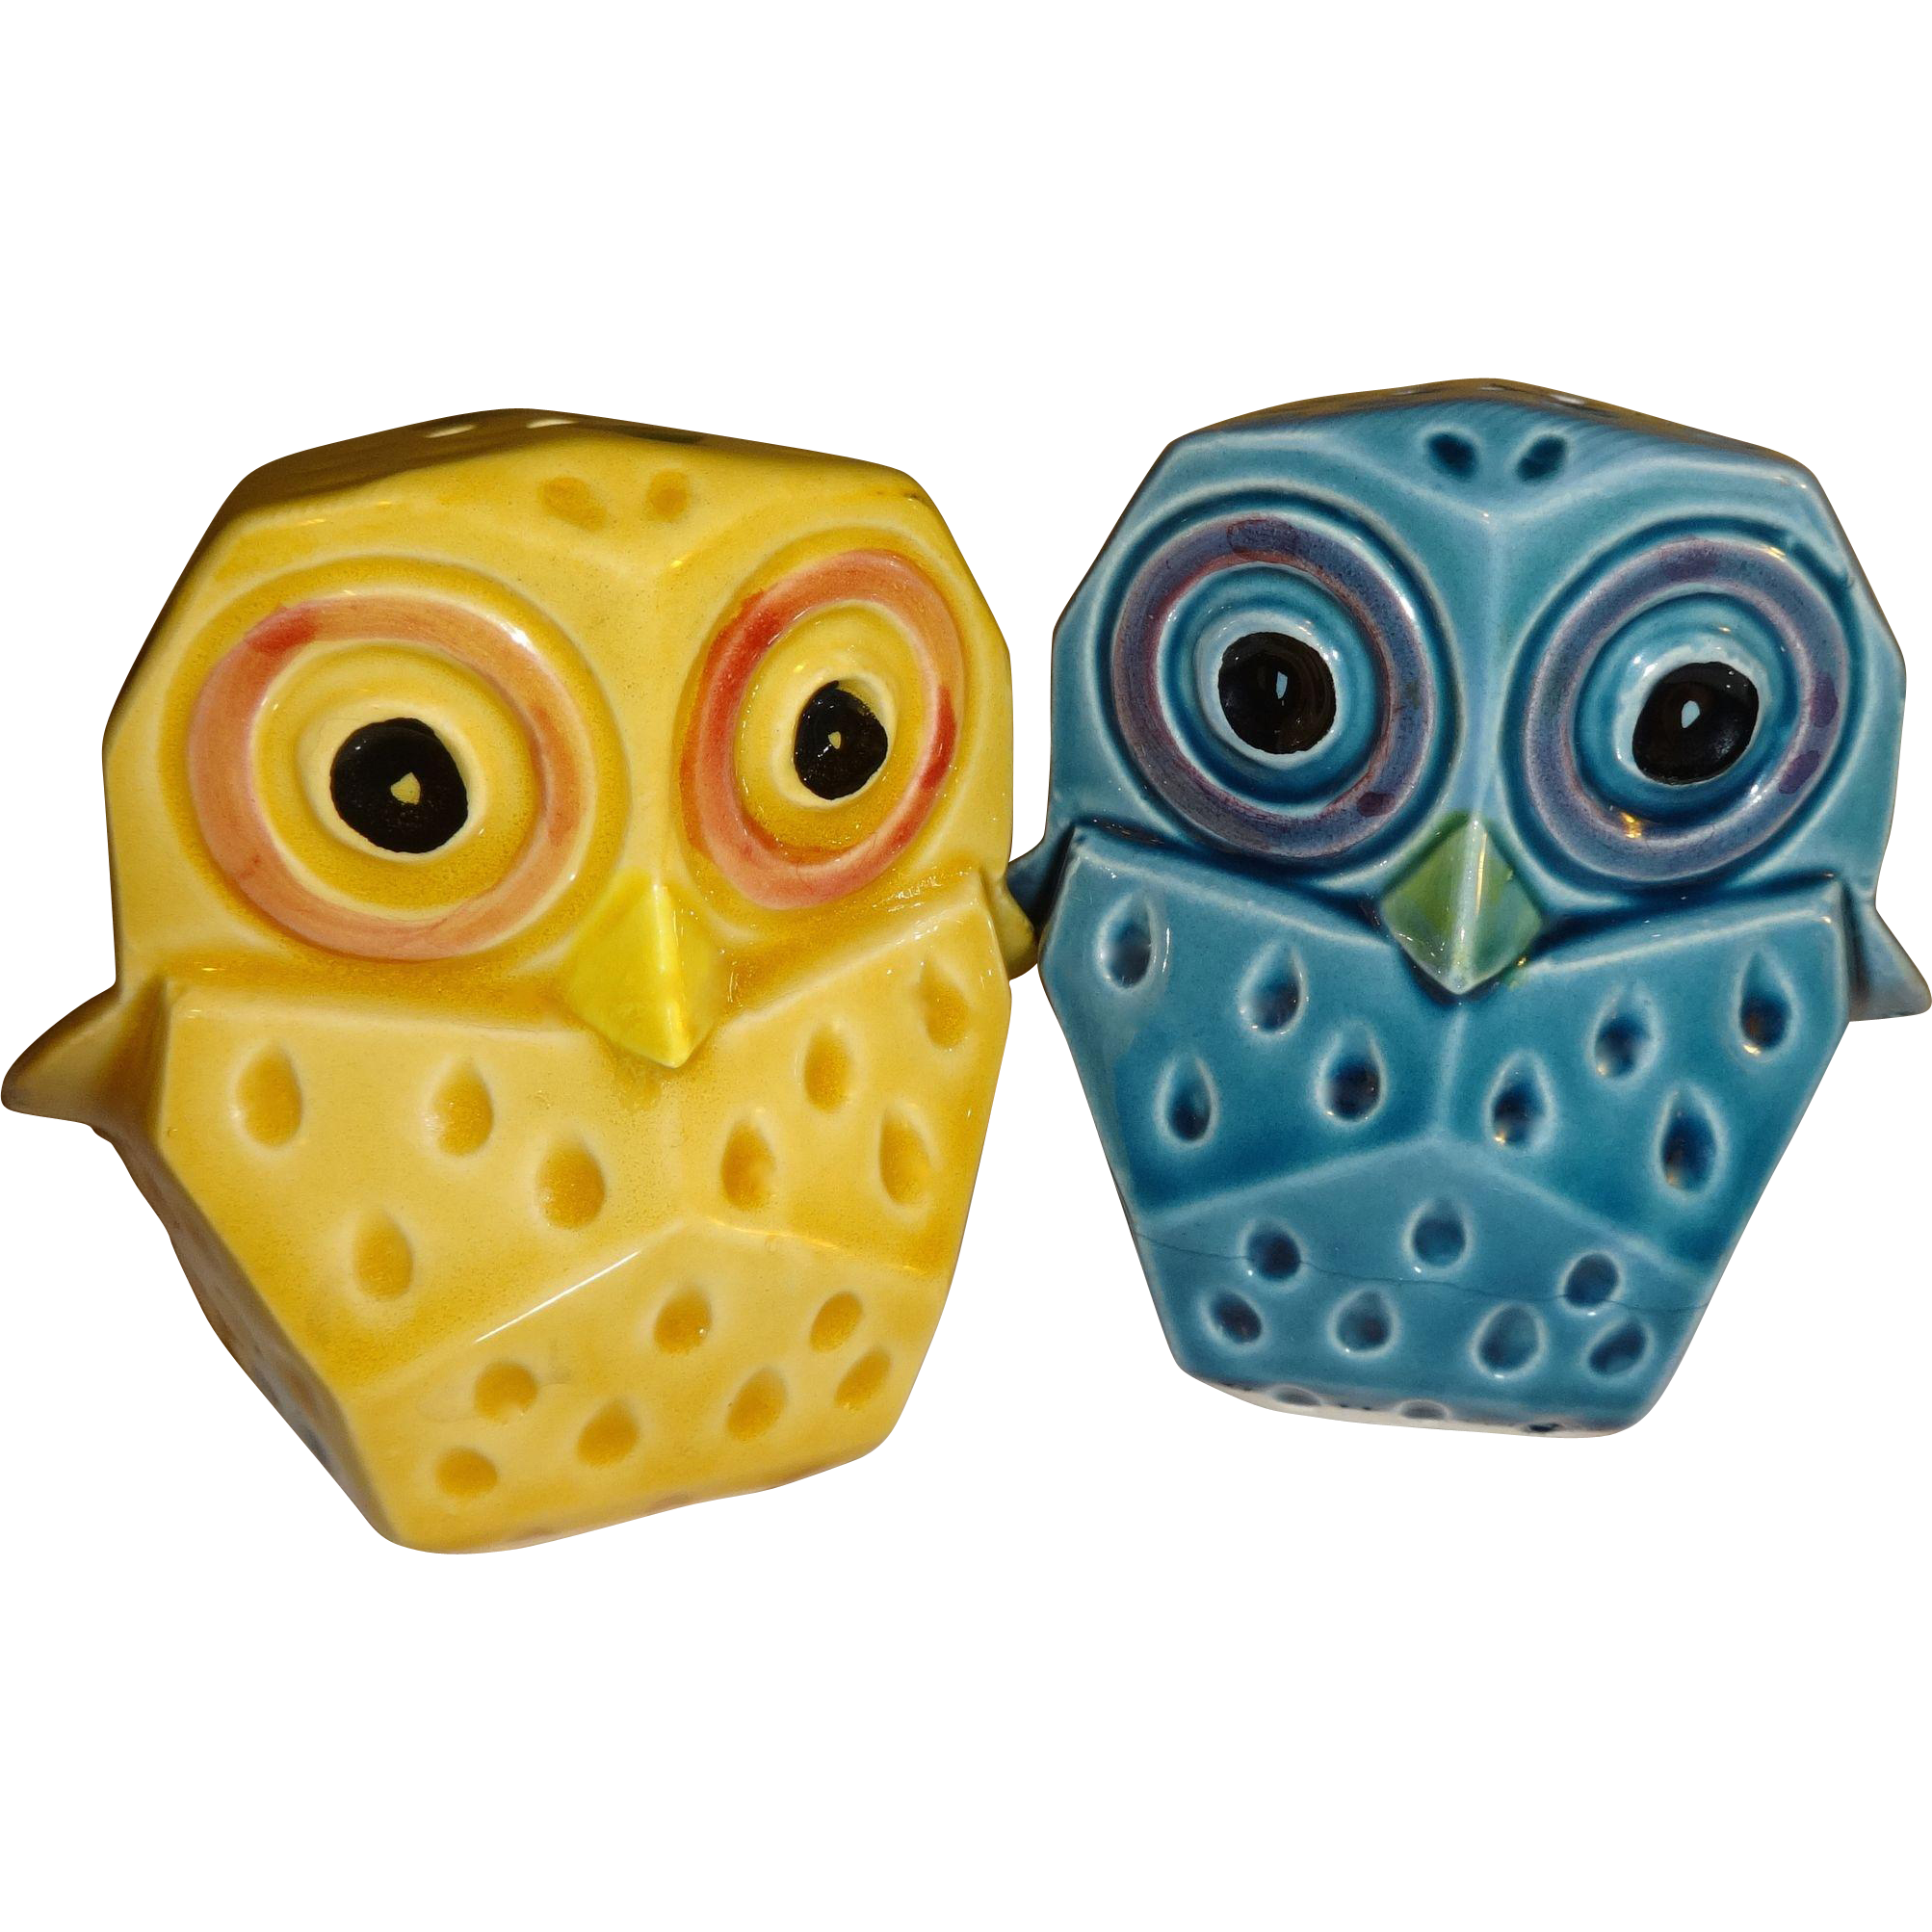 Lefton colorful owl salt and pepper shakers made in Colorful salt and pepper shakers